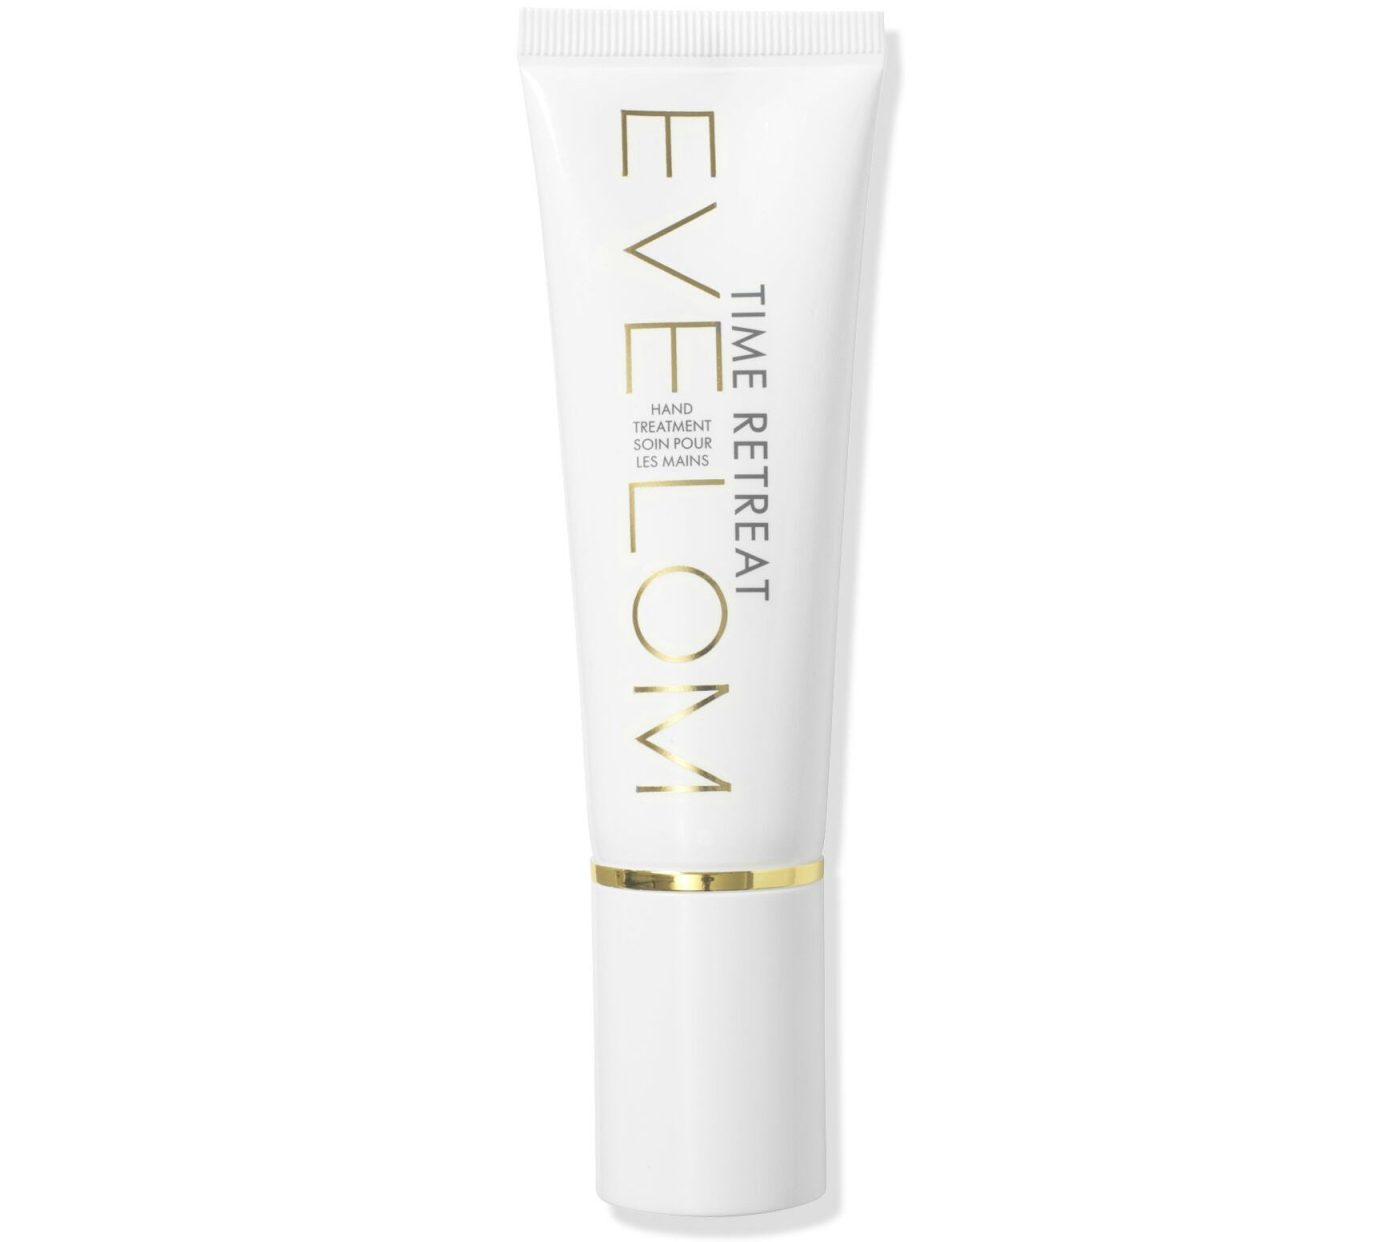 My Celebrity Life – Eve Lom Time Retreat Hand Treatment